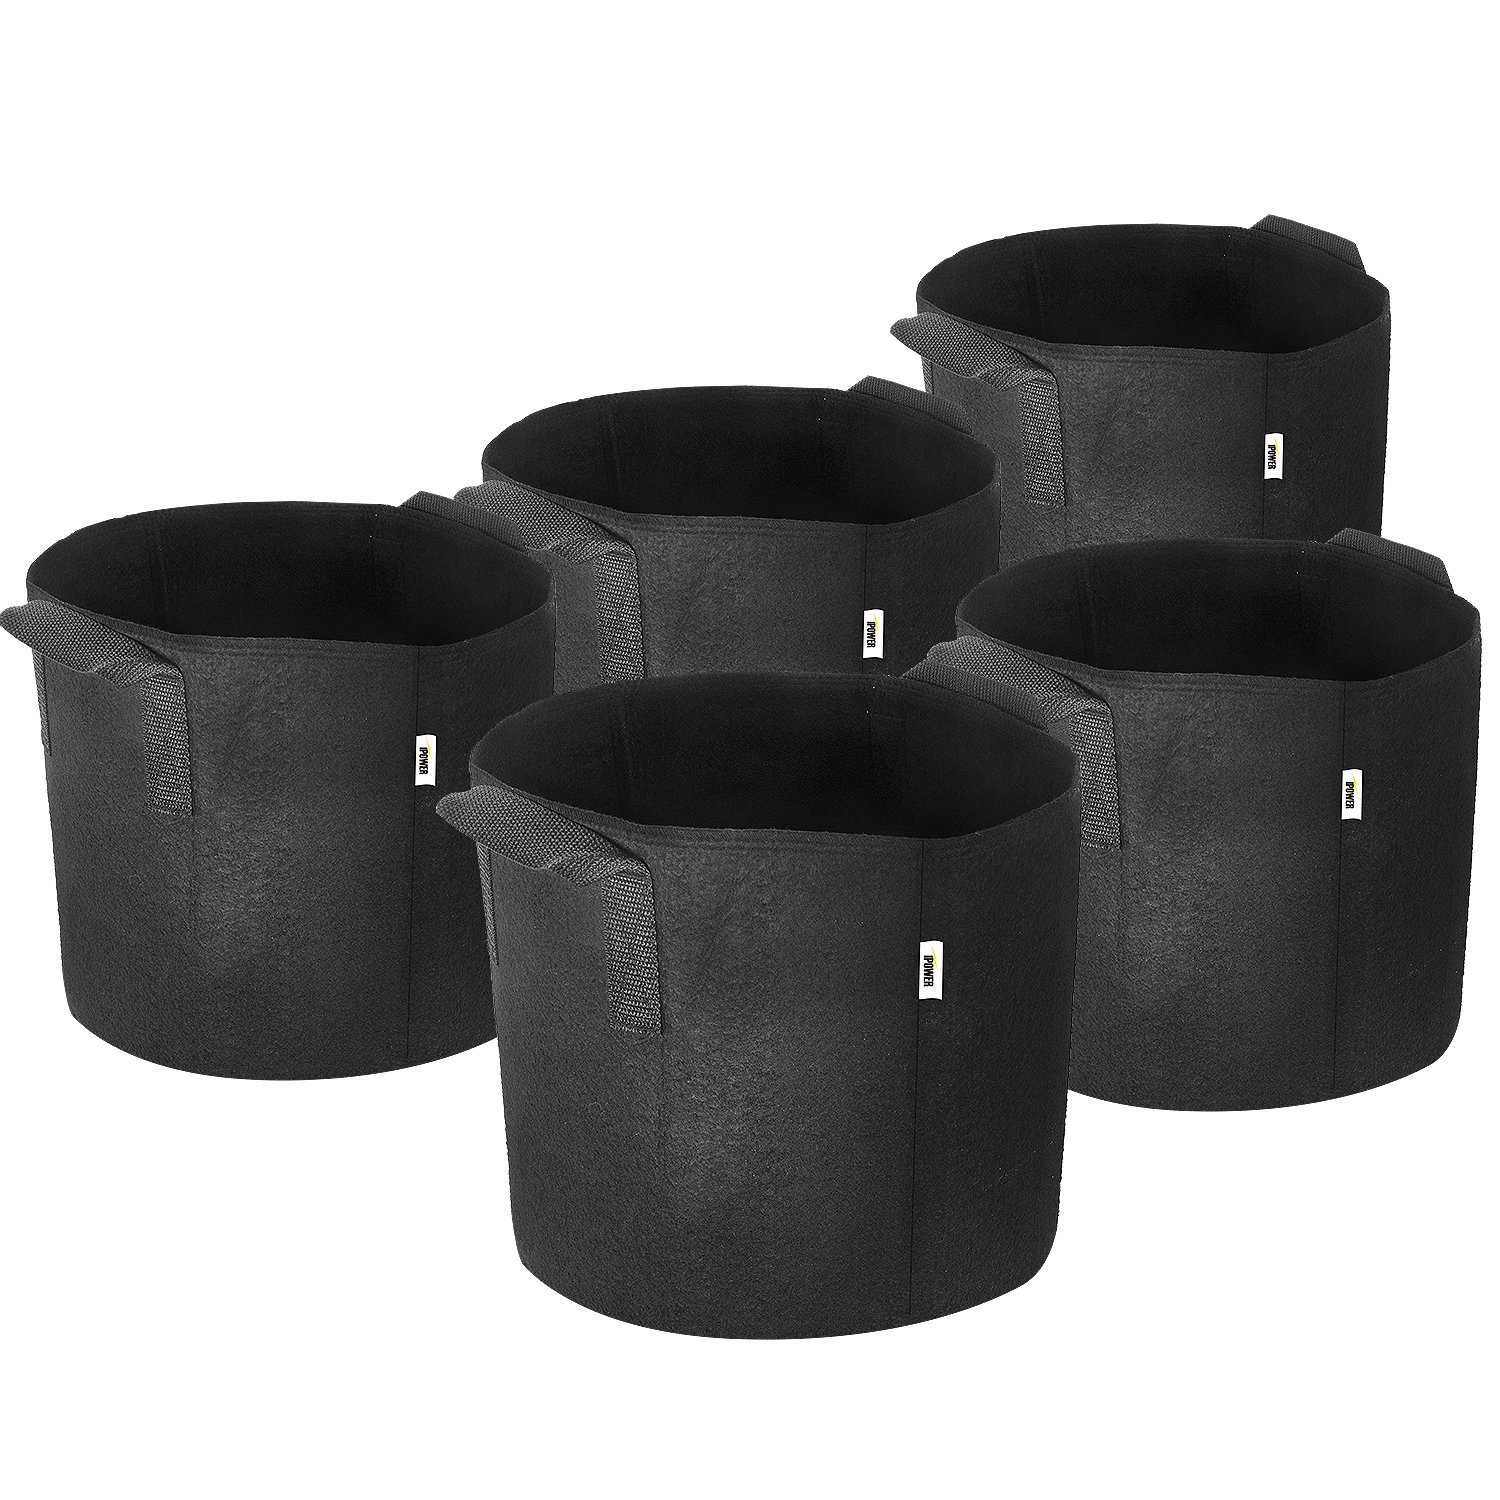 """iPower 3-Gallon 5-Pack Grow Bags Fabric Aeration Pots Container with Strap Handles for Nursery Garden and Planting(Black)"""""""